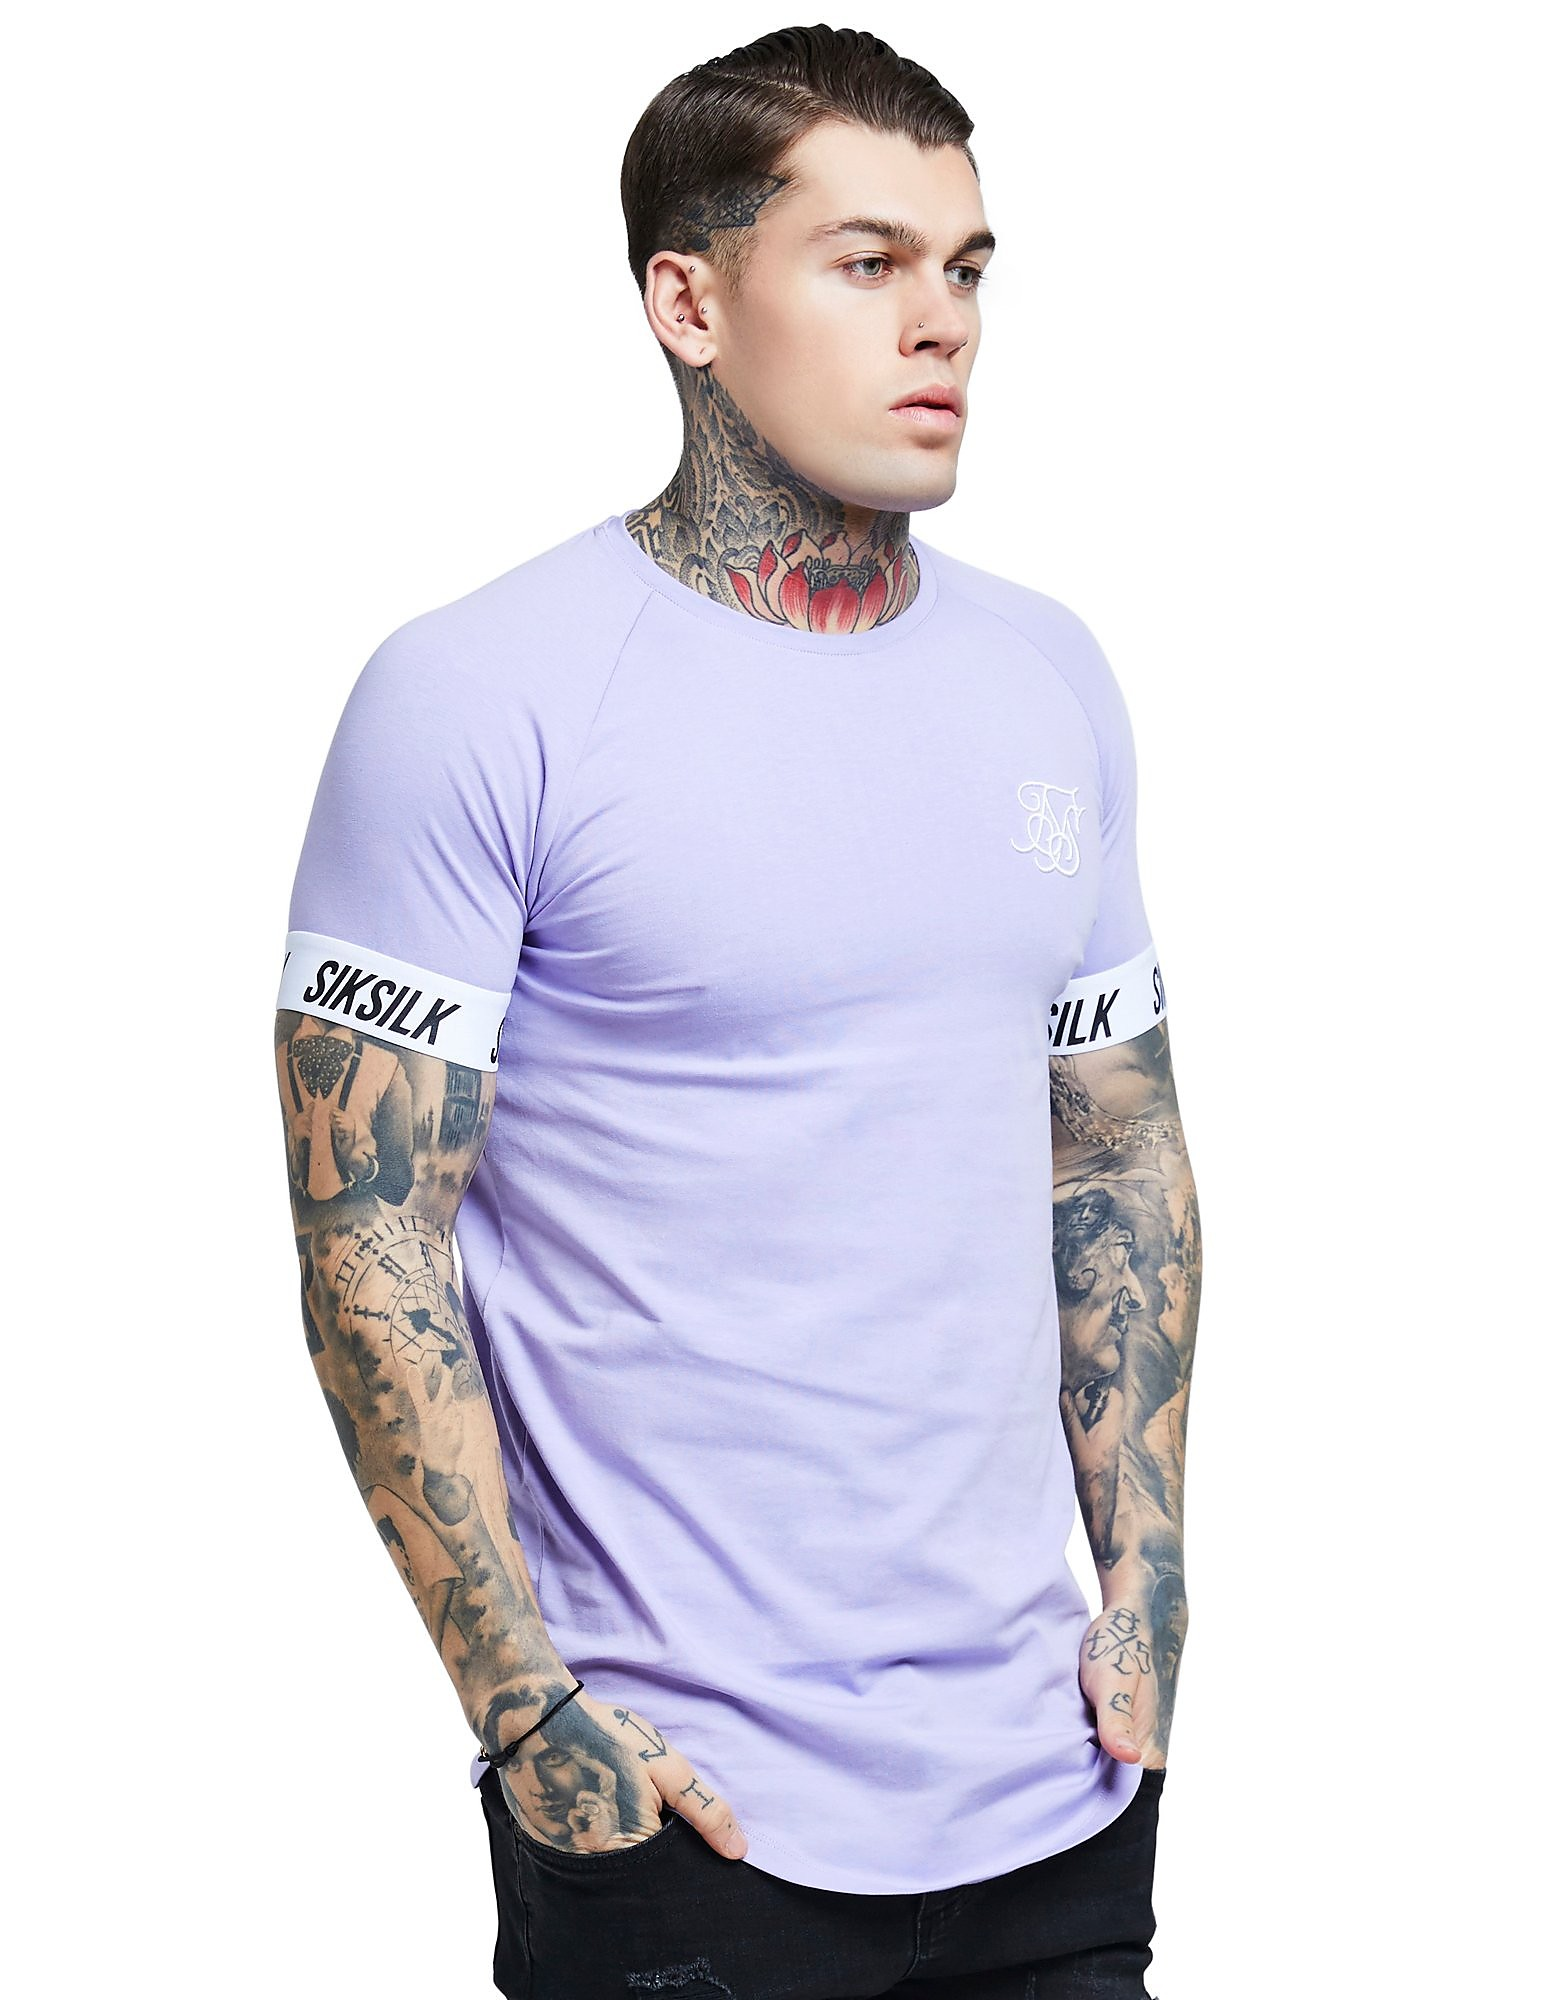 SikSilk Taped Sleeve T-Shirt